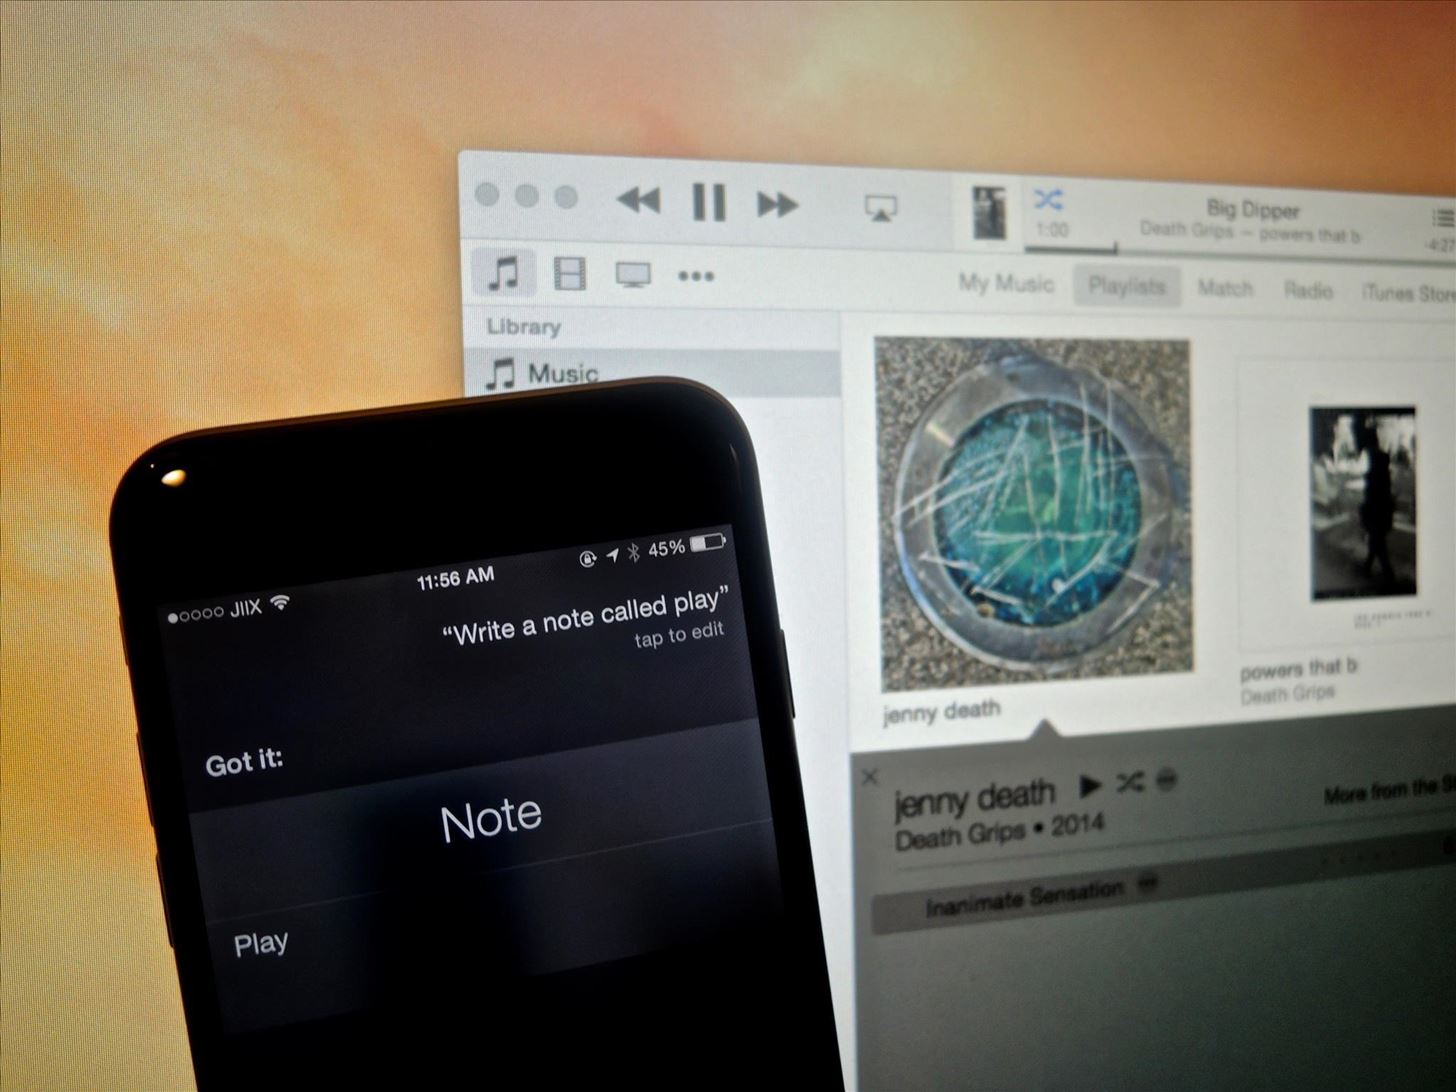 Use Siri to Control iTunes, Put Your Mac to Sleep, & More from Your iPhone